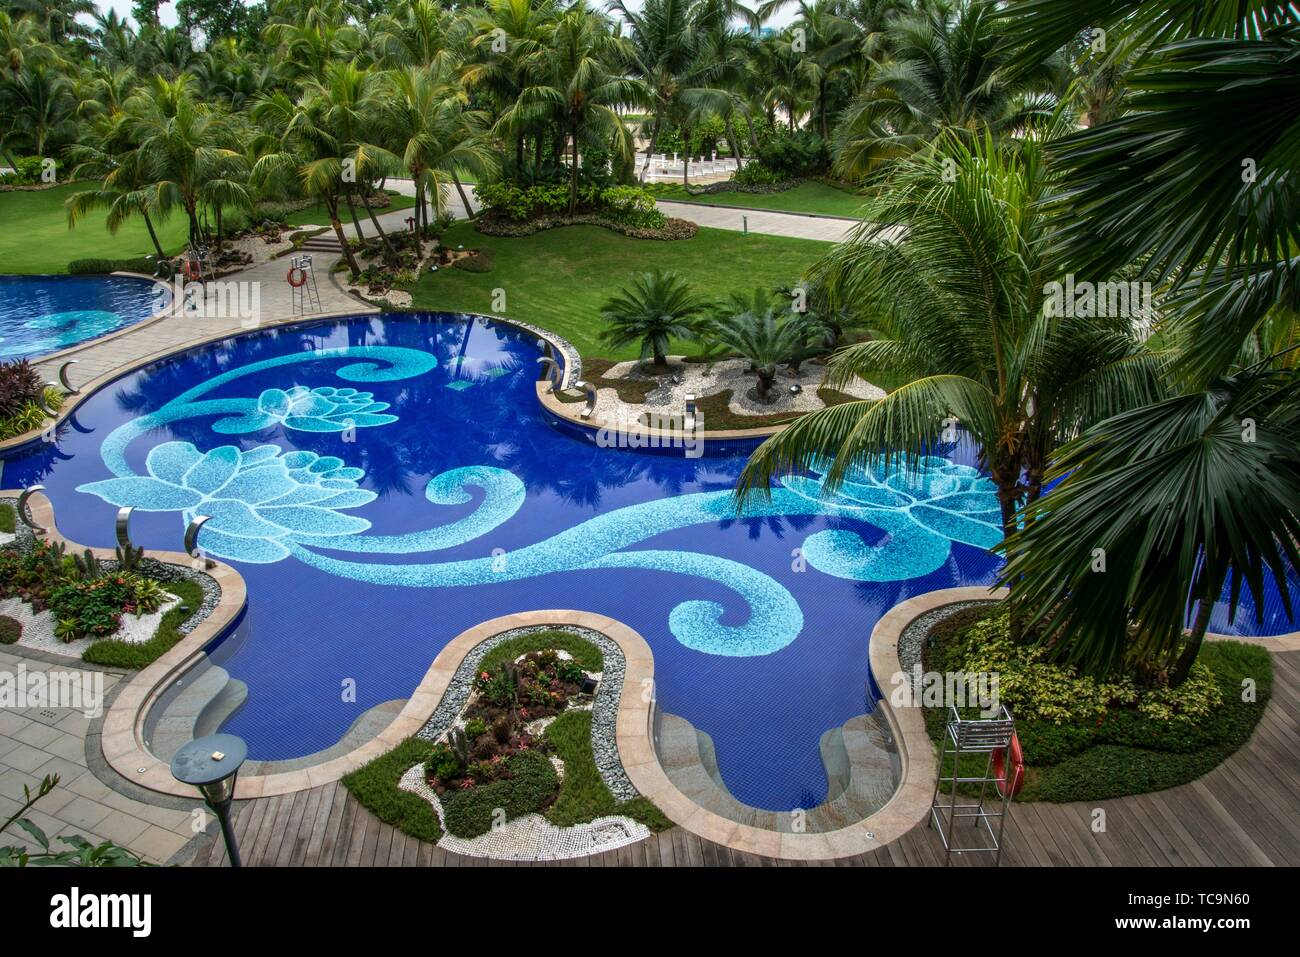 The Swimming Pool Of Forest City Phoenix International Marina Hotel Johor Bahru Malaysia Stock Photo Alamy